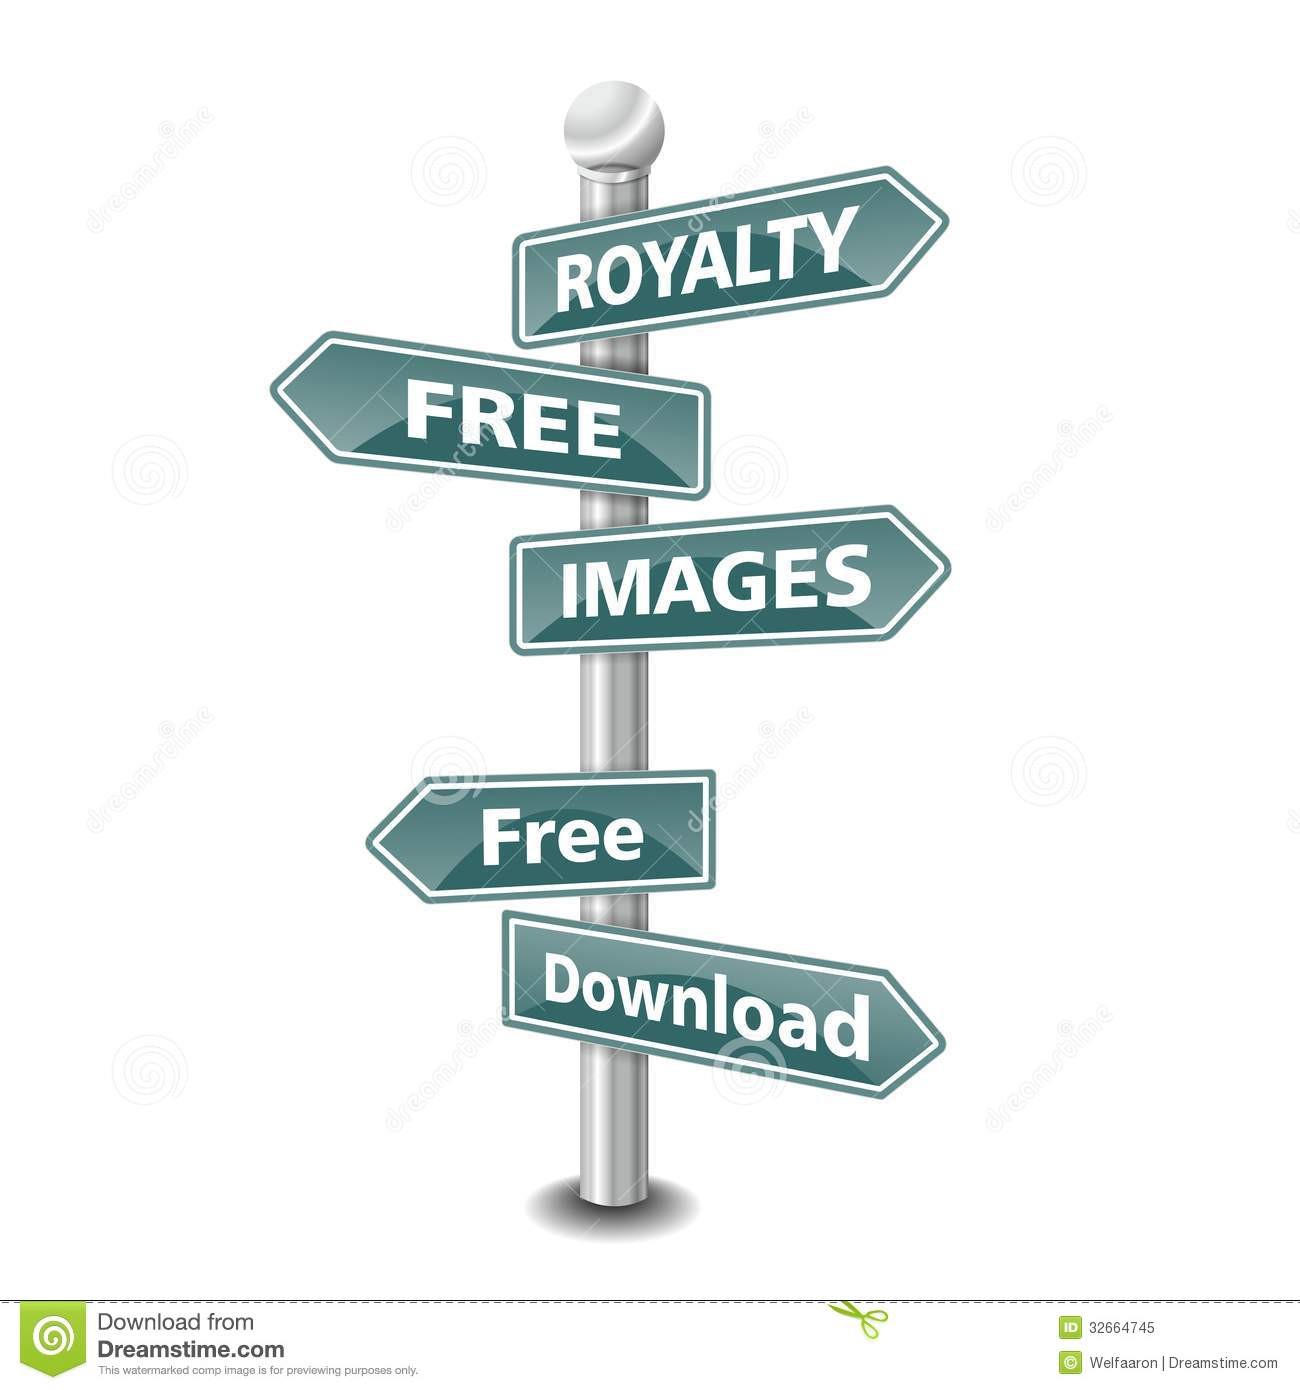 ROYALTY FREE IMAGES Icon As Signpost - NEW TOP TREND ... | 1300 x 1390 jpeg 77kB